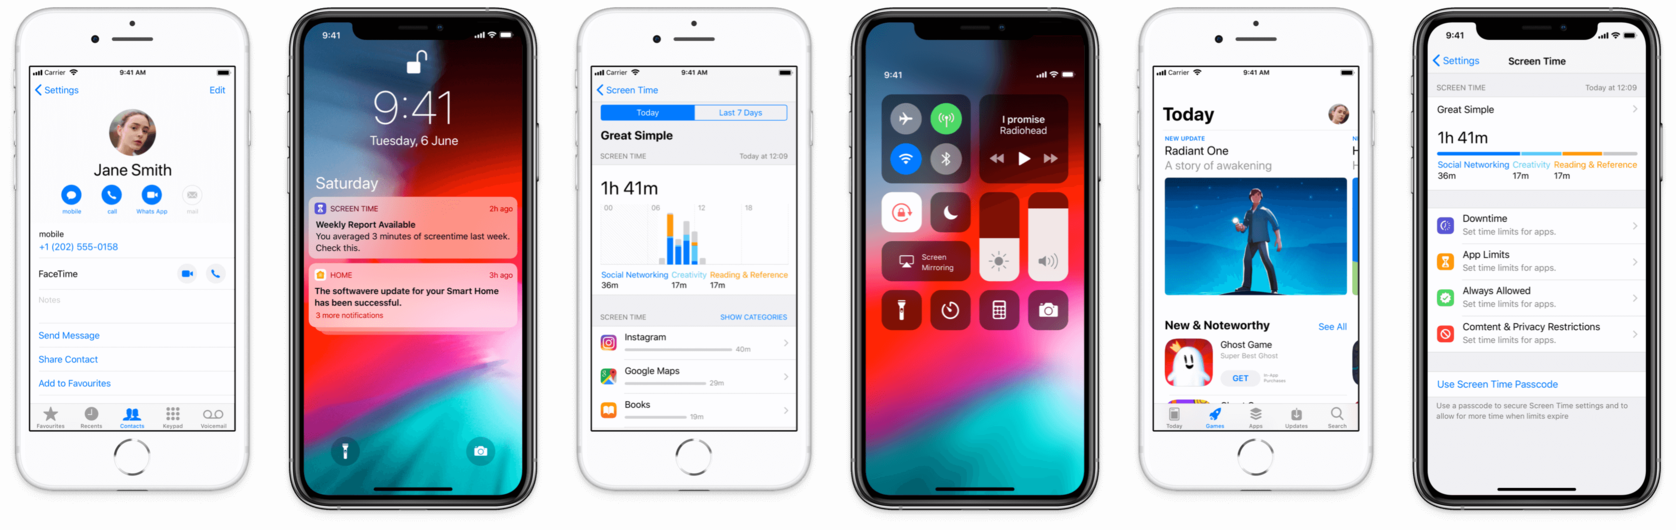 iOS Design Kit – Library of iOS app templates and UI elements — iOS